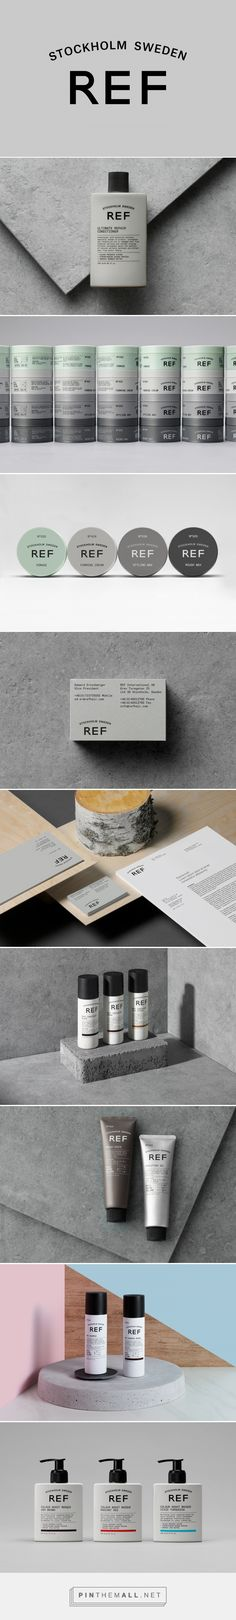 REF Stockholm on Behance - created via https://pinthemall.net